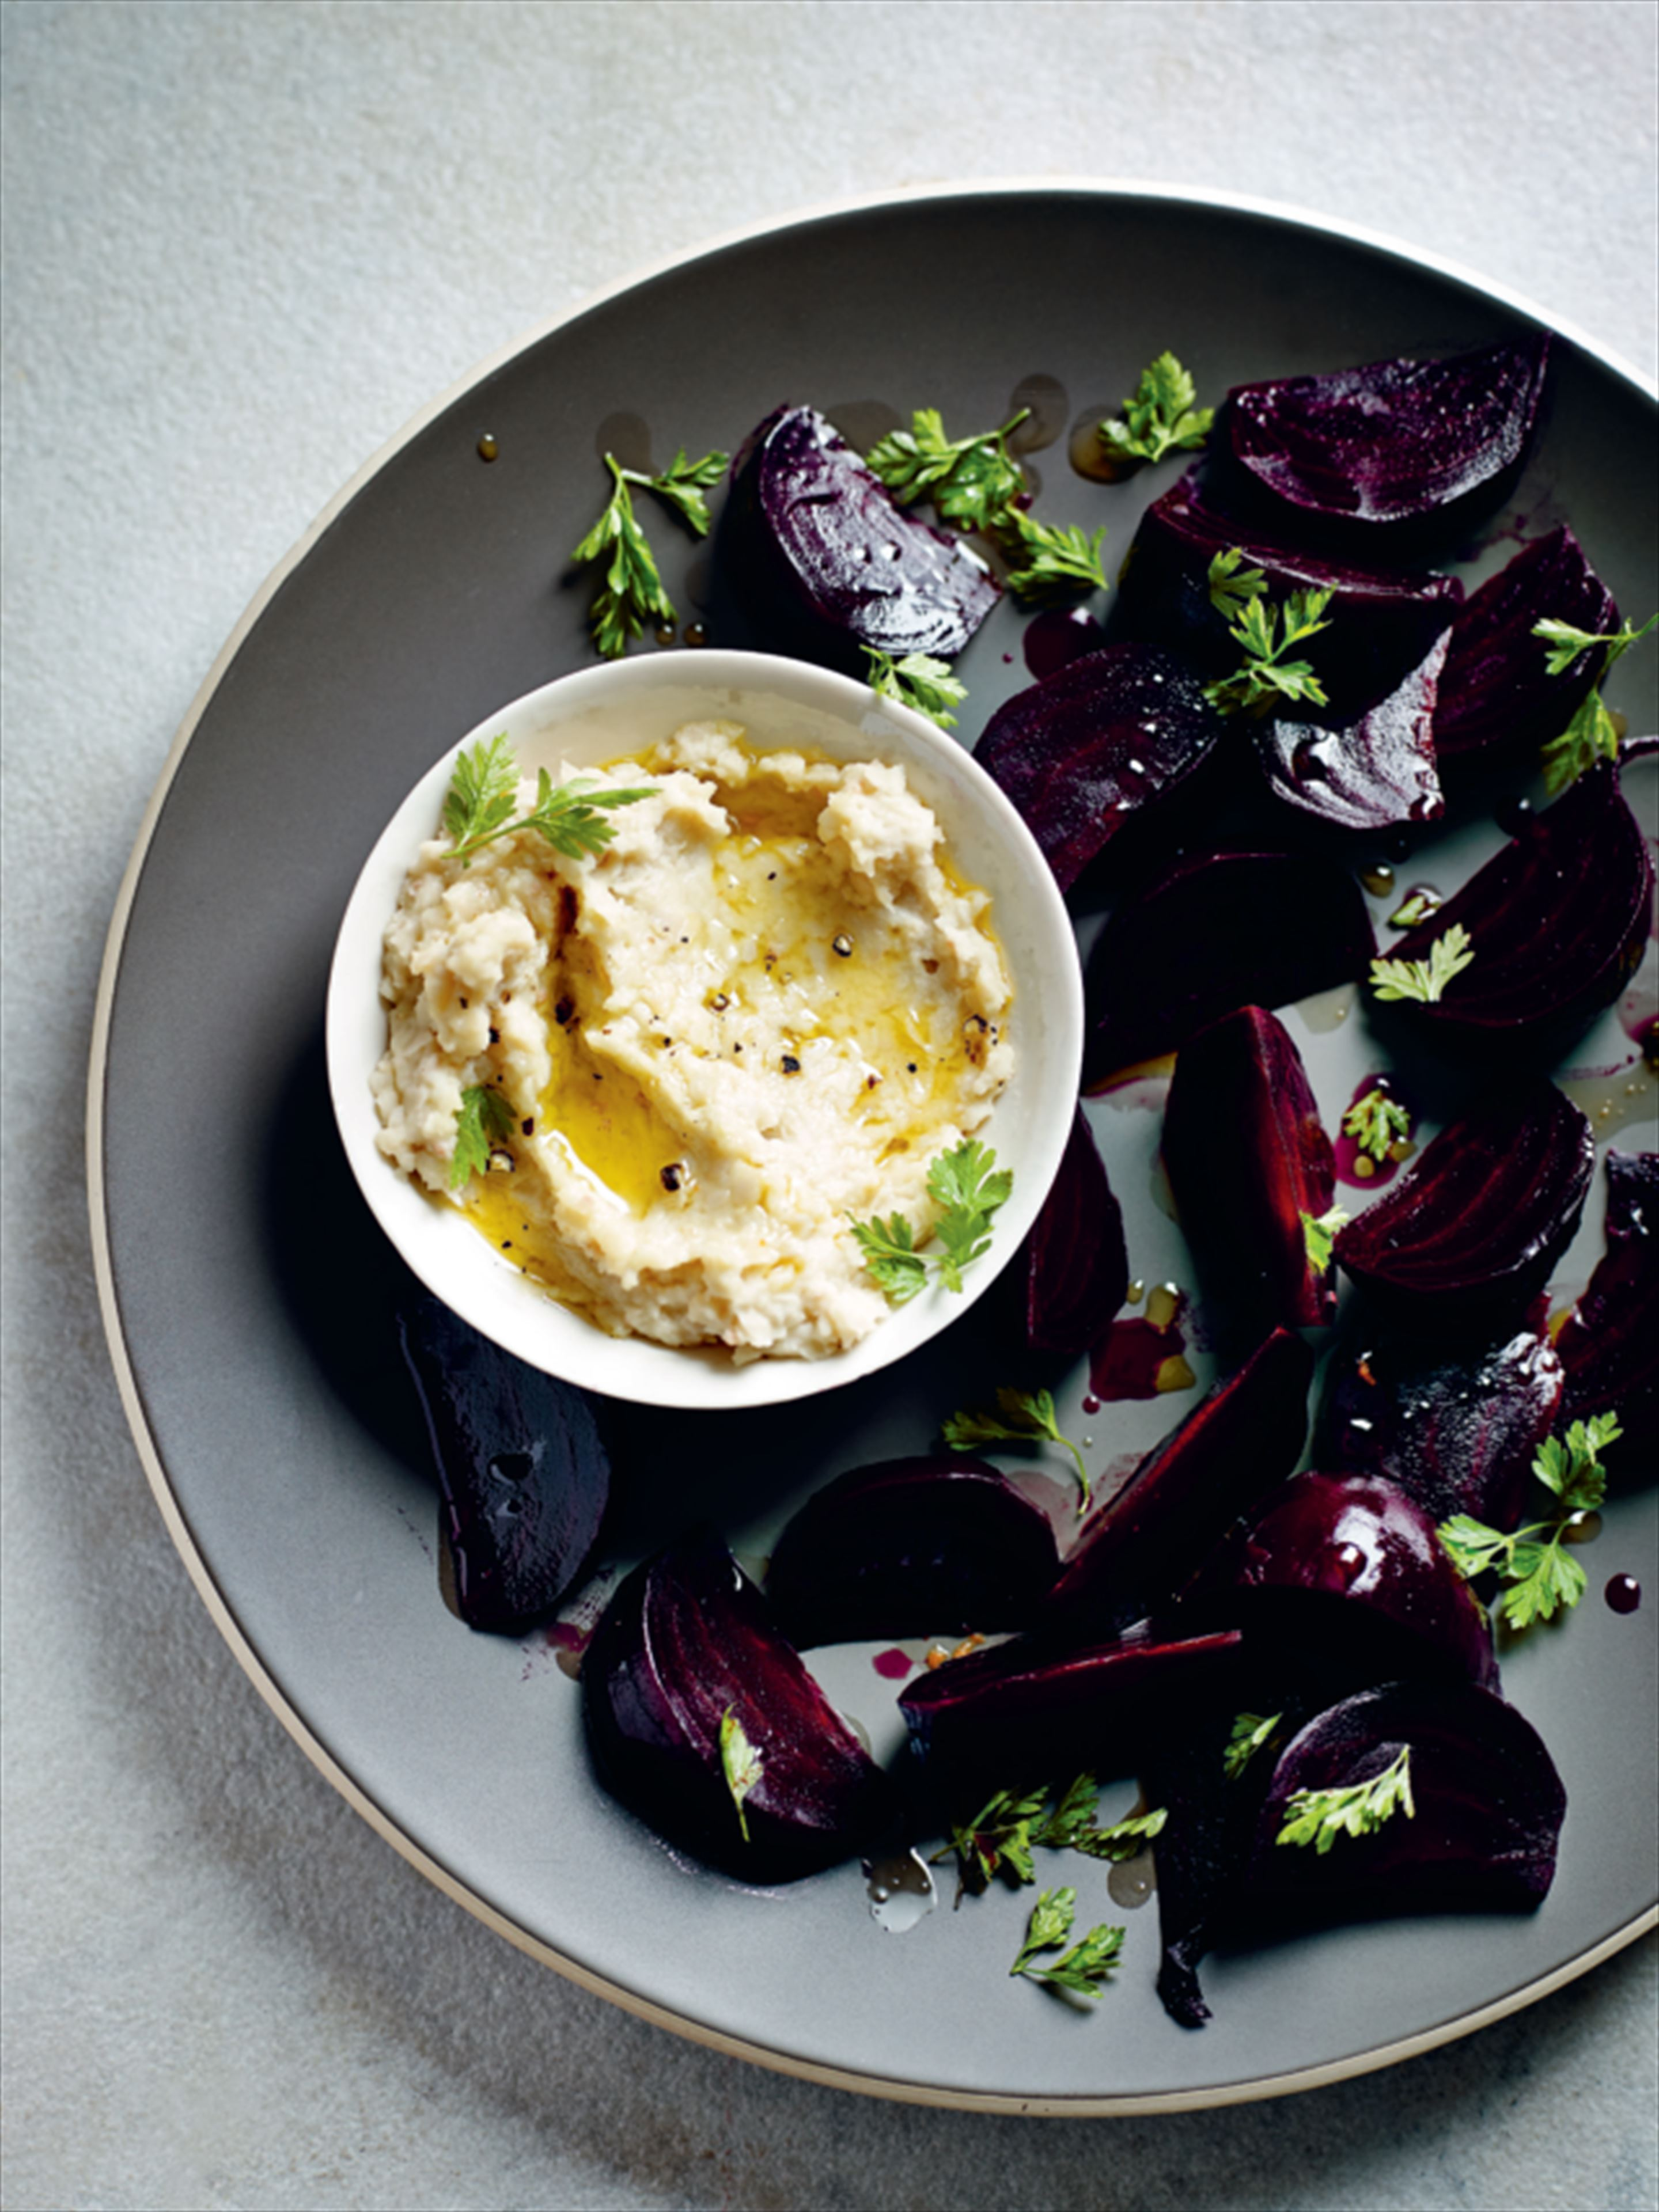 Baked beetroot wedges with white bean houmous